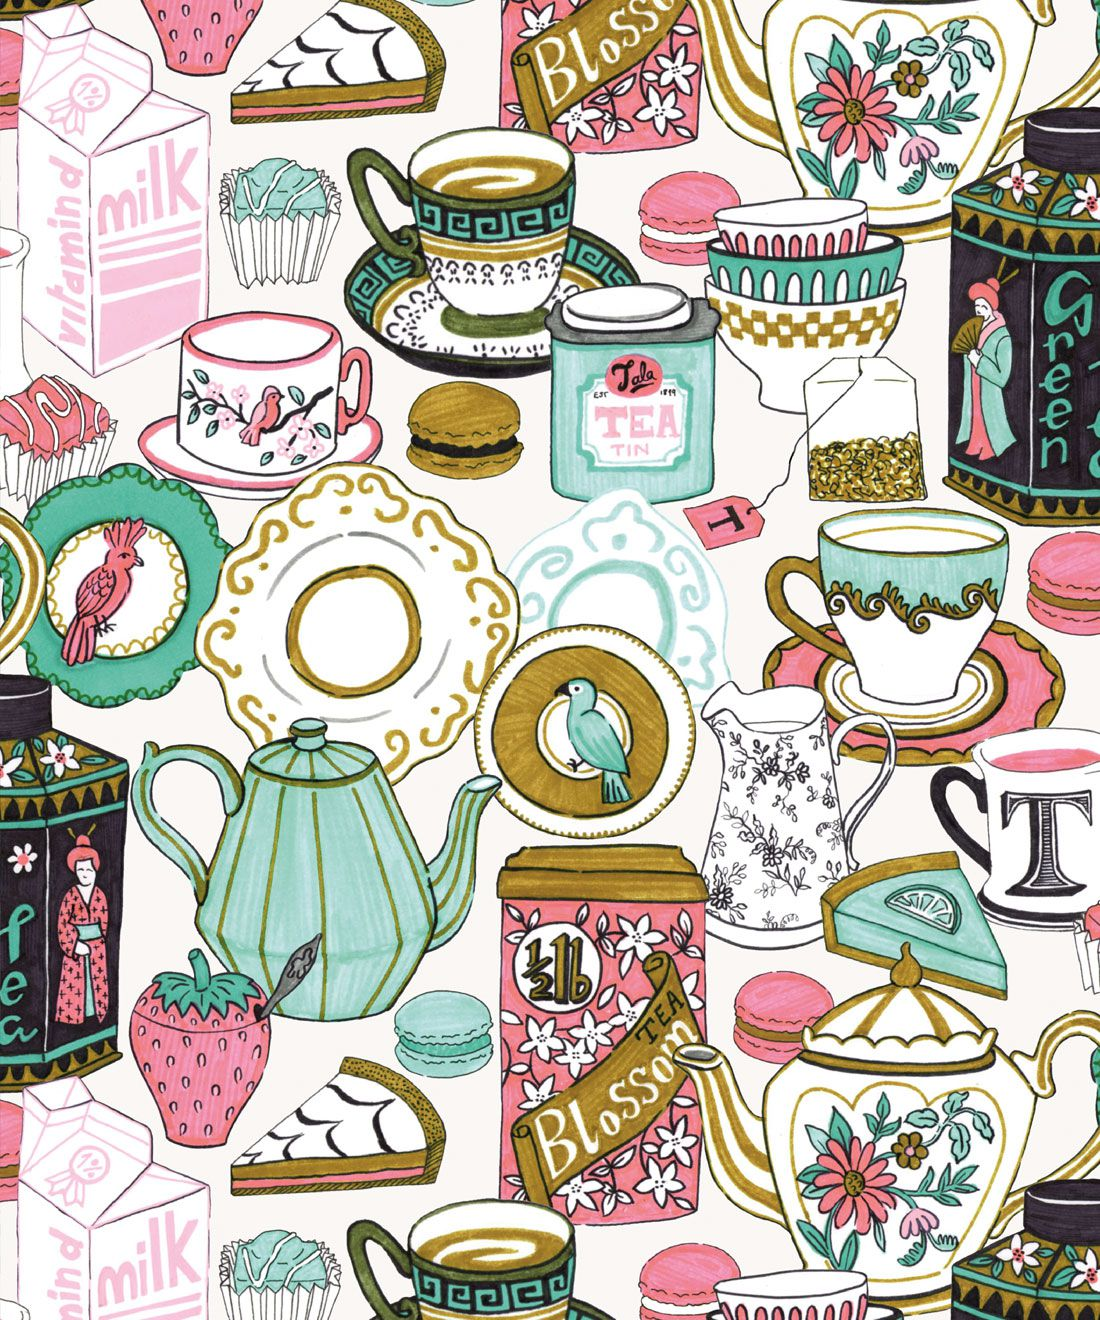 Tea Time Wallpaper • tea cups, tea pots, macaroons • milk and cream swatch